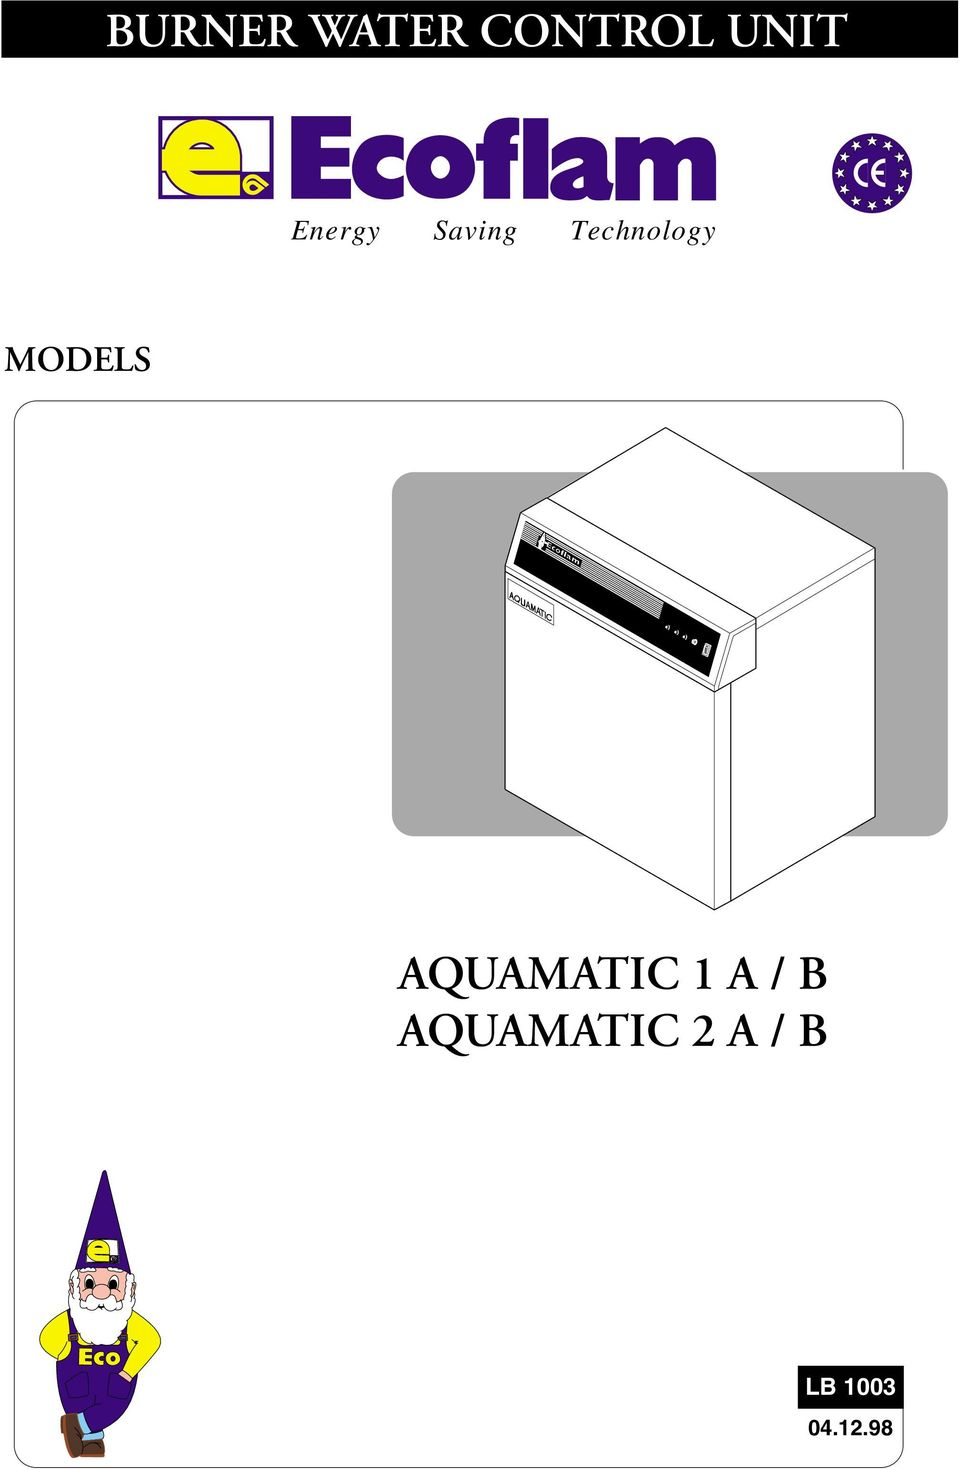 MODELS AQUAMATIC 1 A / B